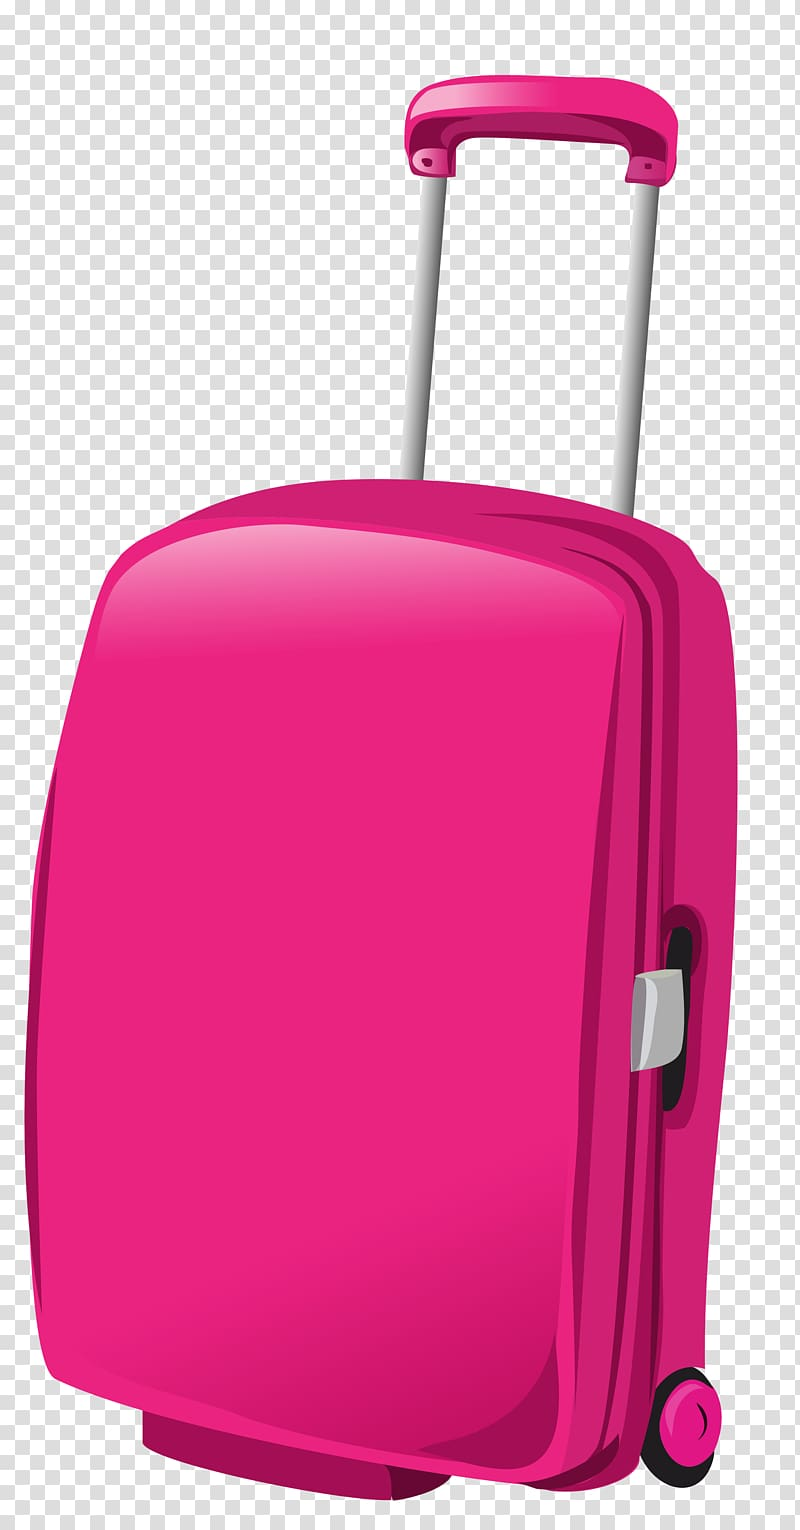 pink suitcase clipart 10 free Cliparts  Download images on Clipground 2020